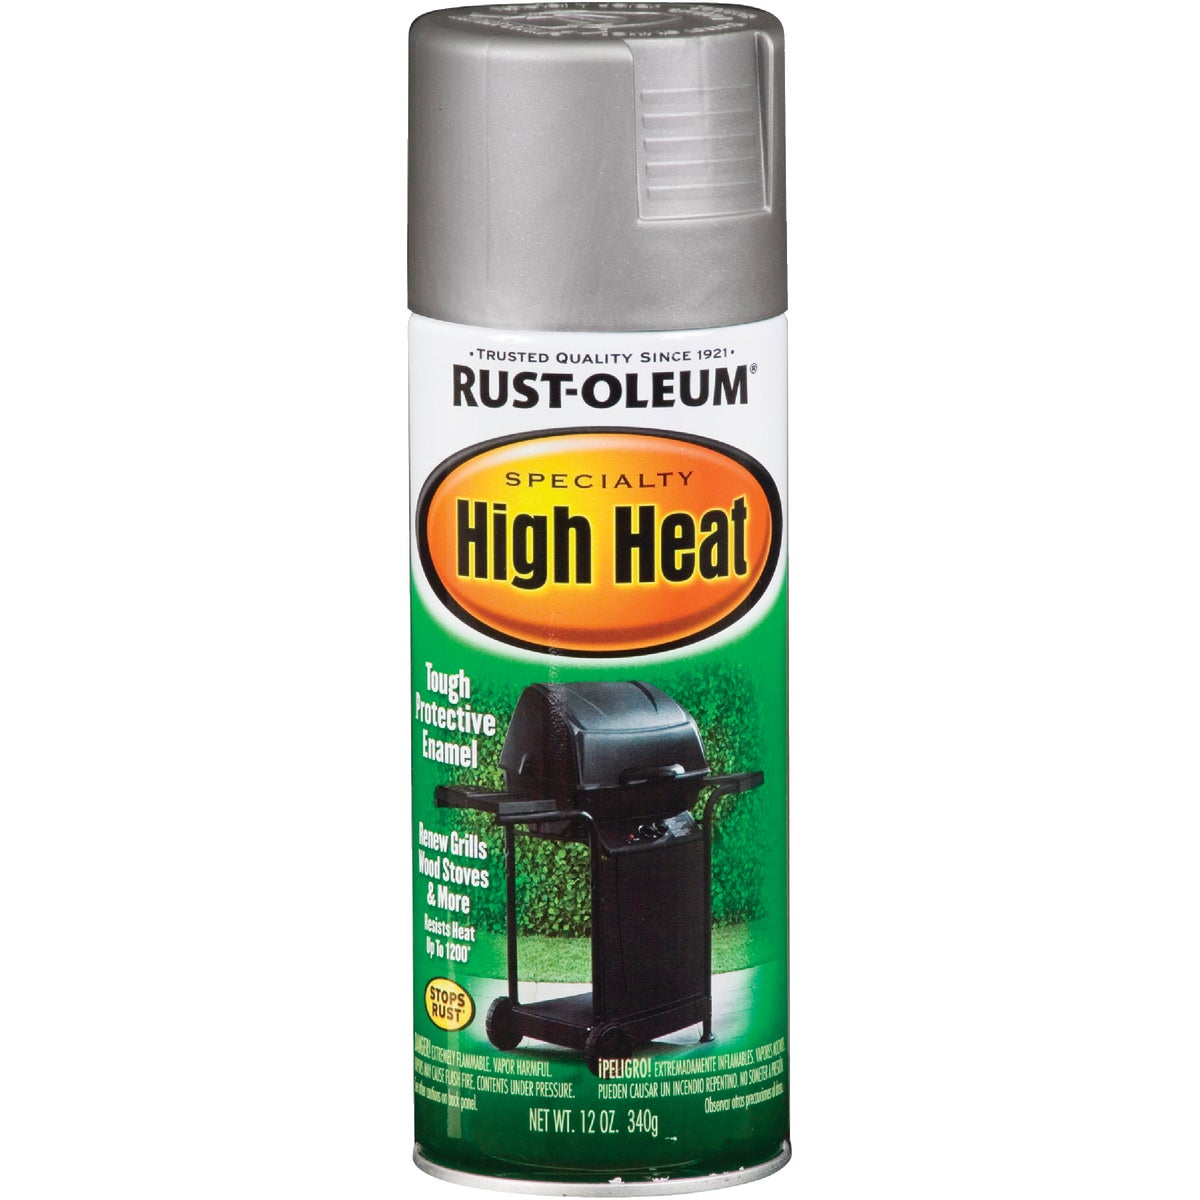 SLVR HI-HEAT SPRAY PAINT - 7716-830 by Rustoleum